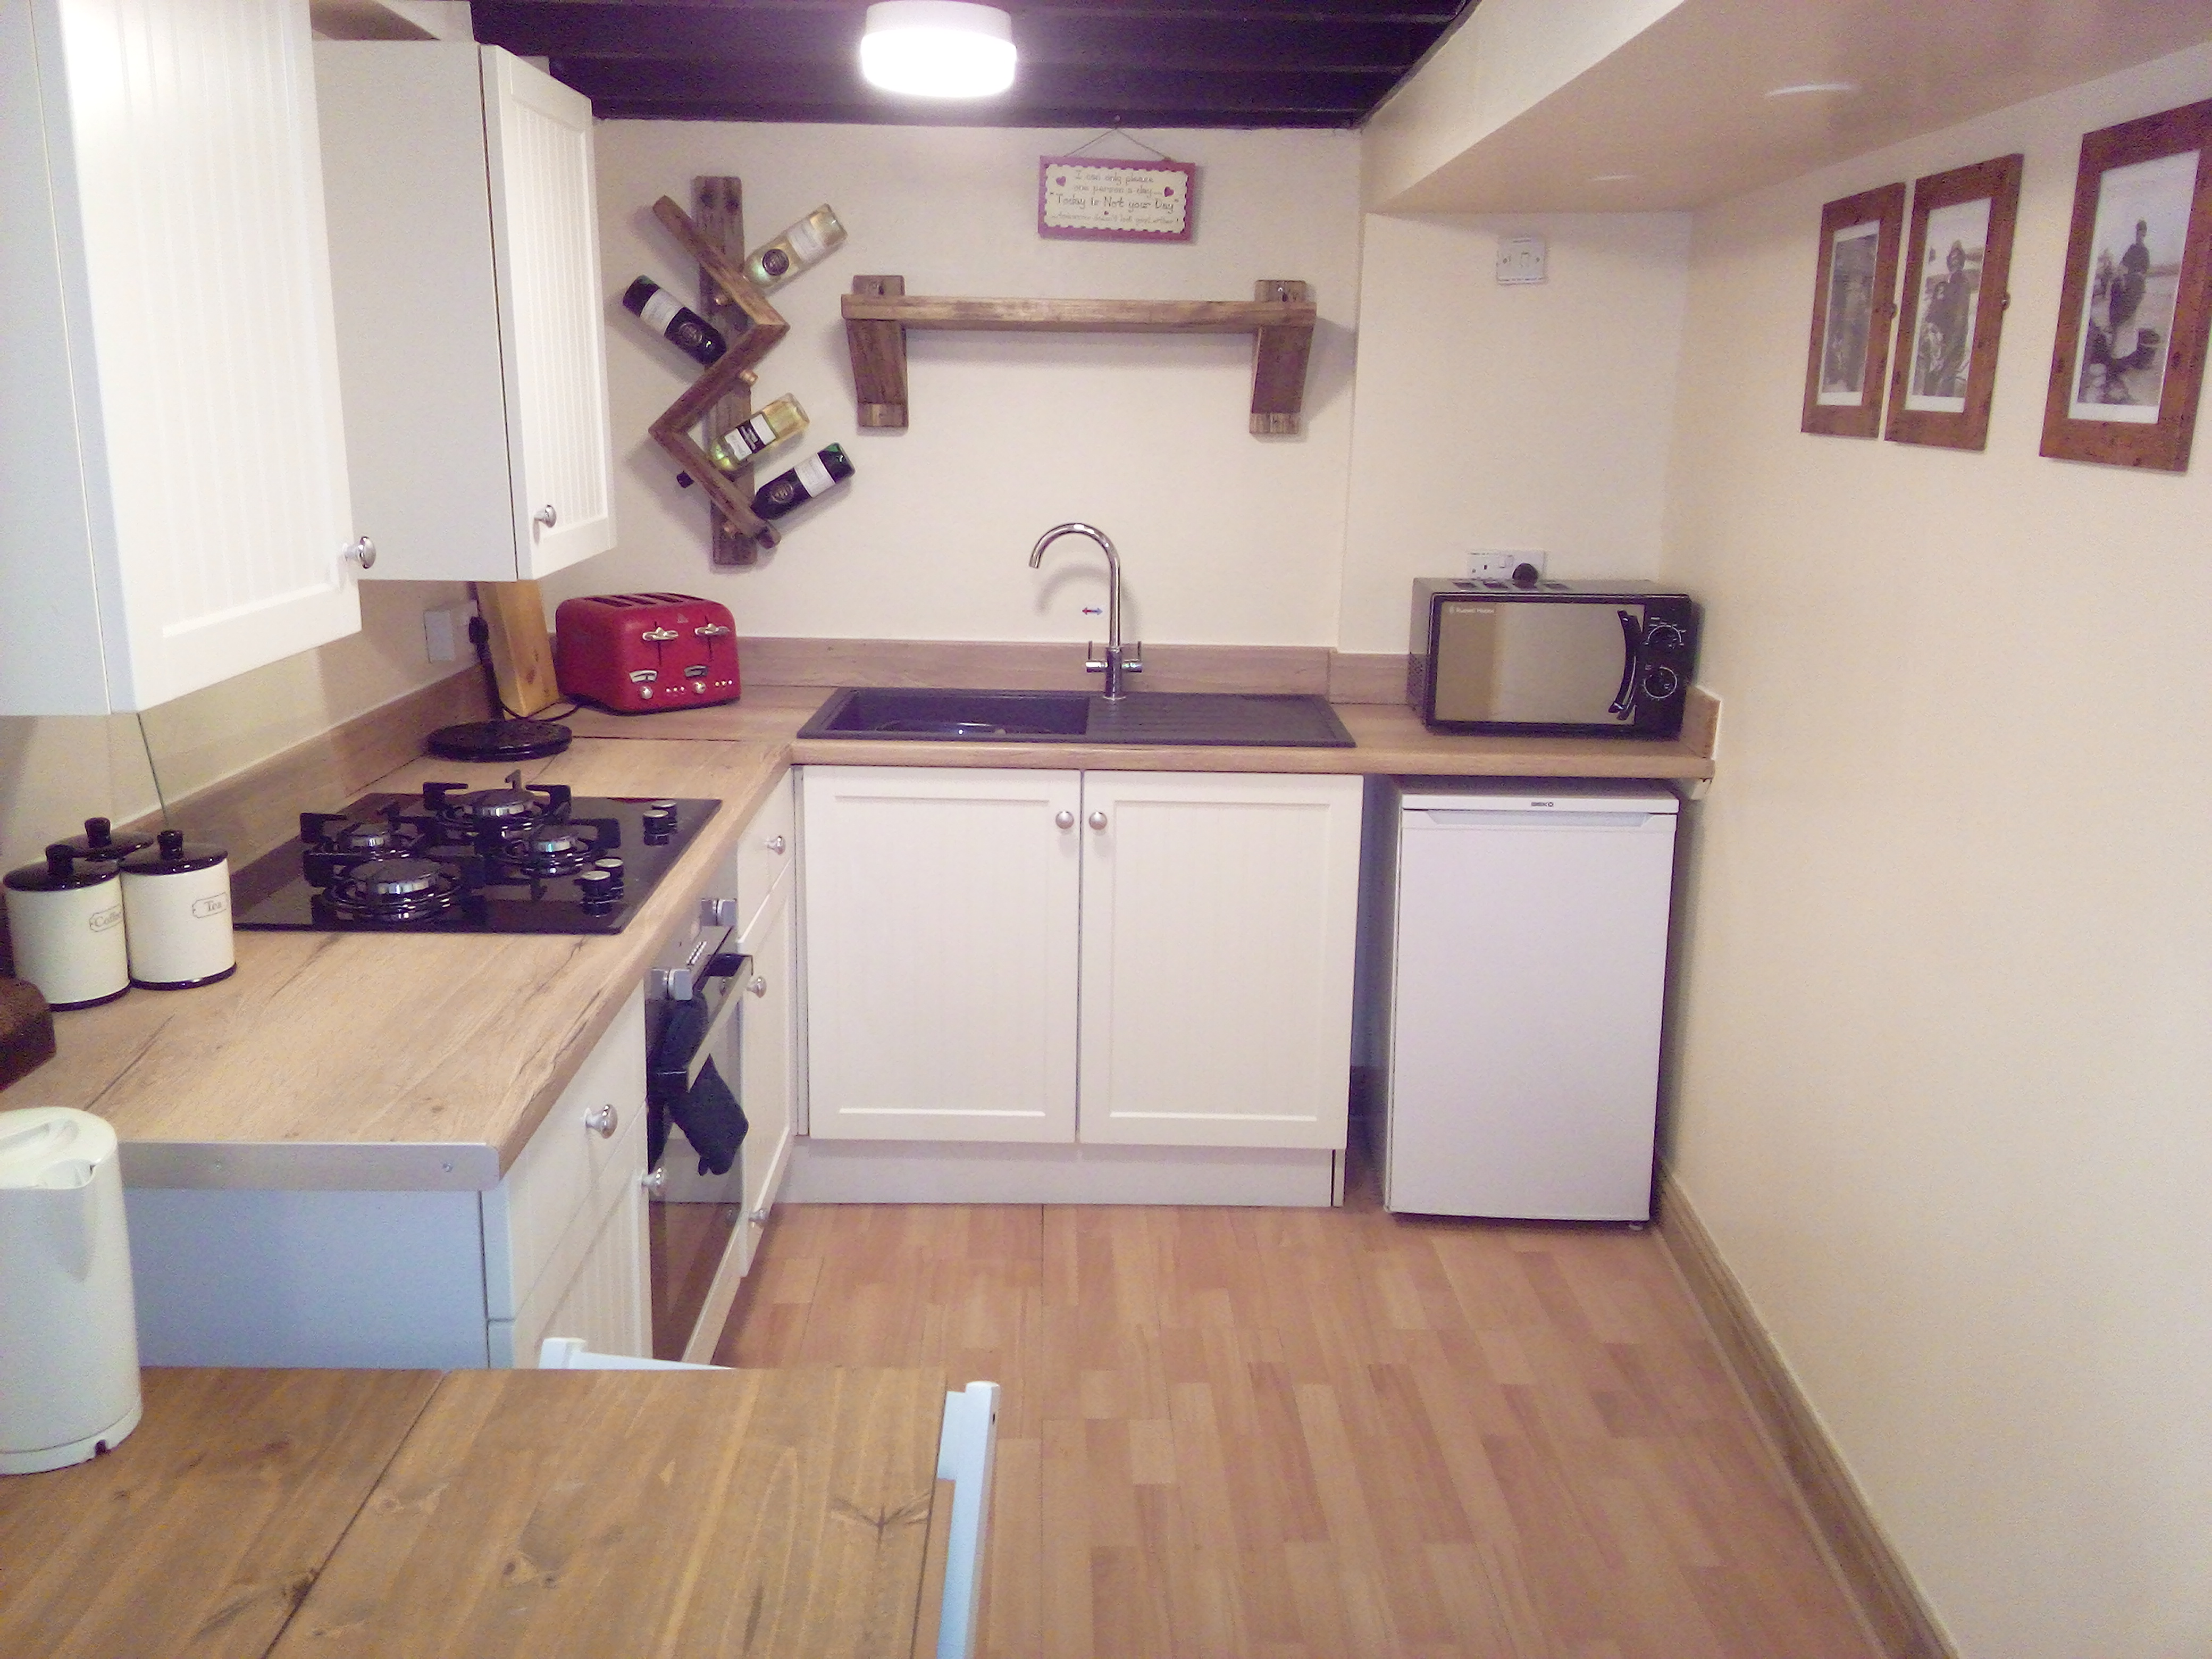 Amazing Self Catering Holiday Cottage Accommodation In Whitby Home Interior And Landscaping Oversignezvosmurscom